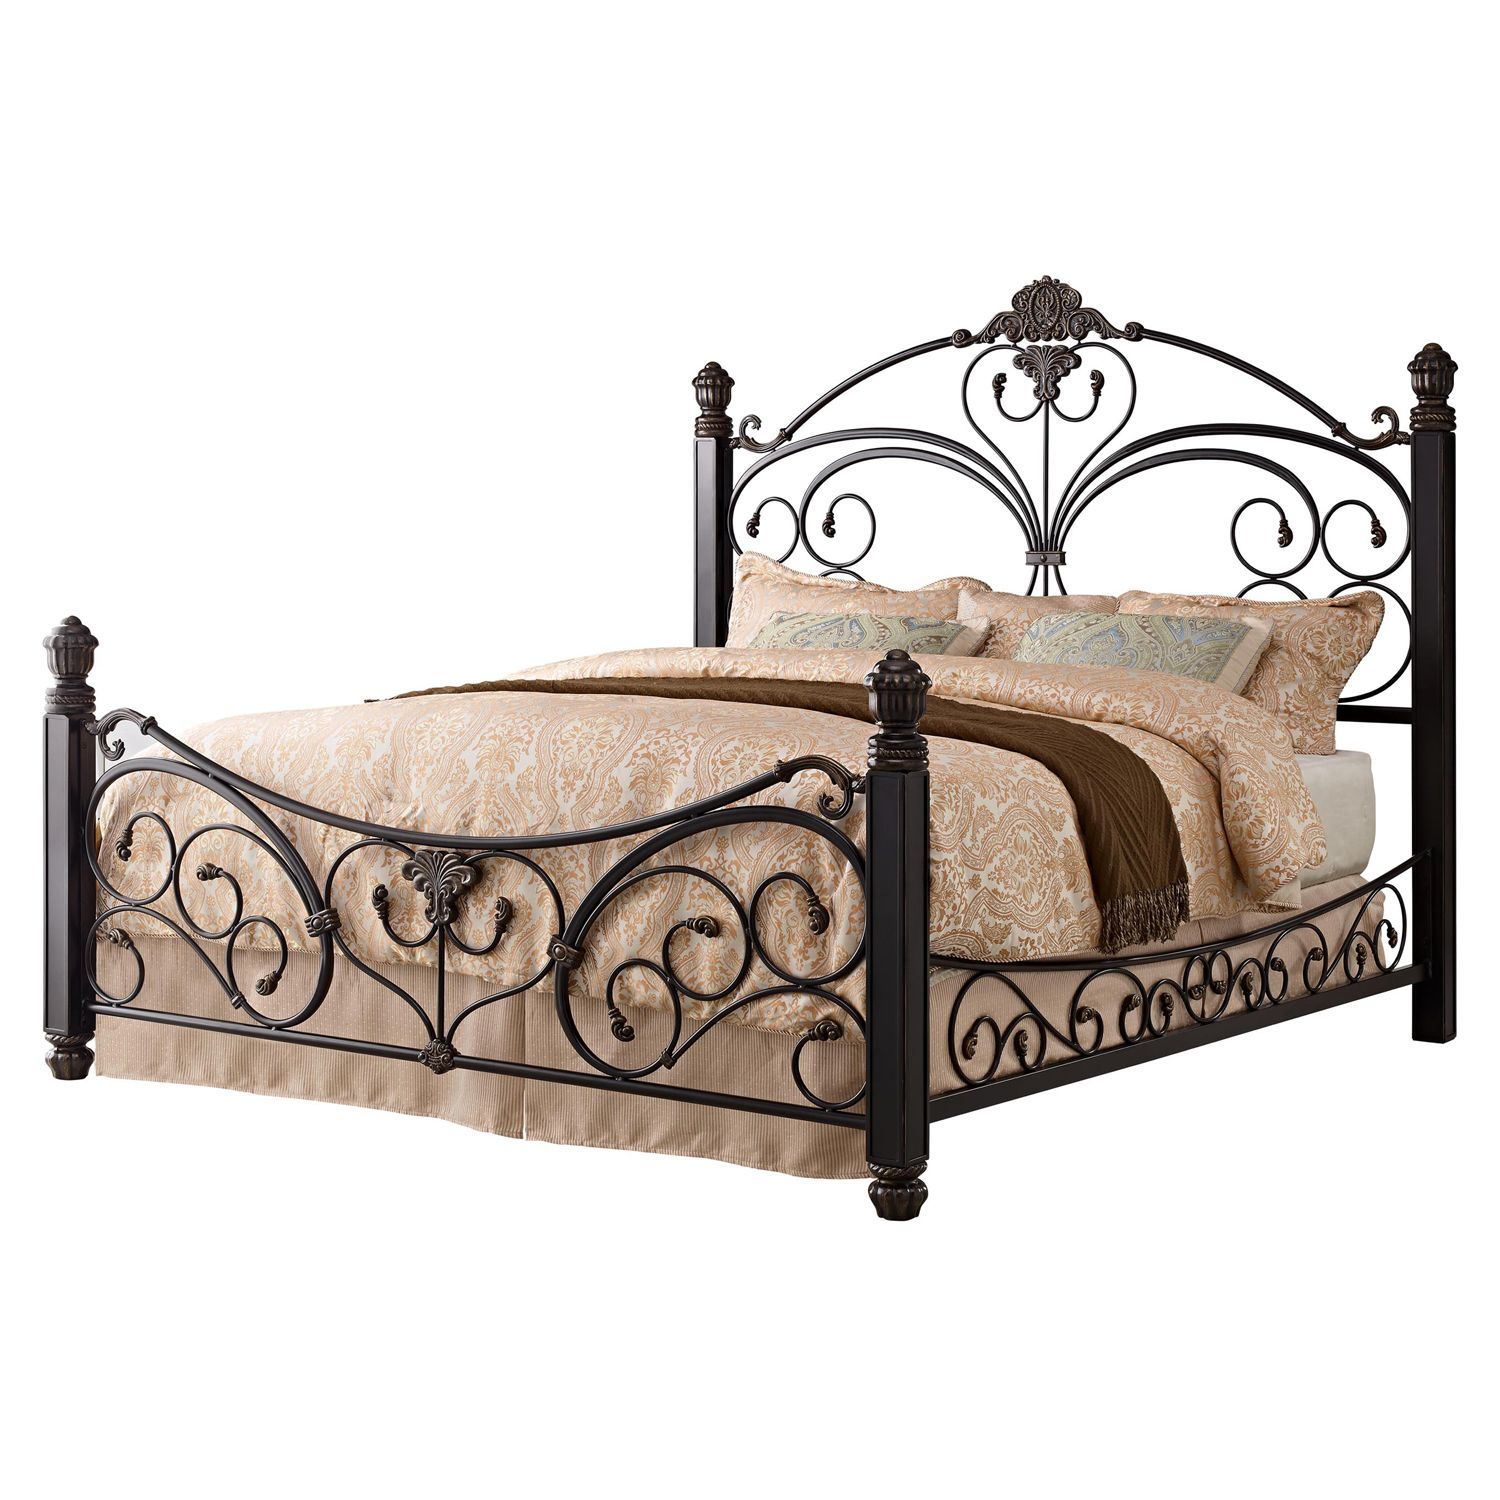 Alysa Metal King Bed With Decorative Side Rails Sam S Club Our